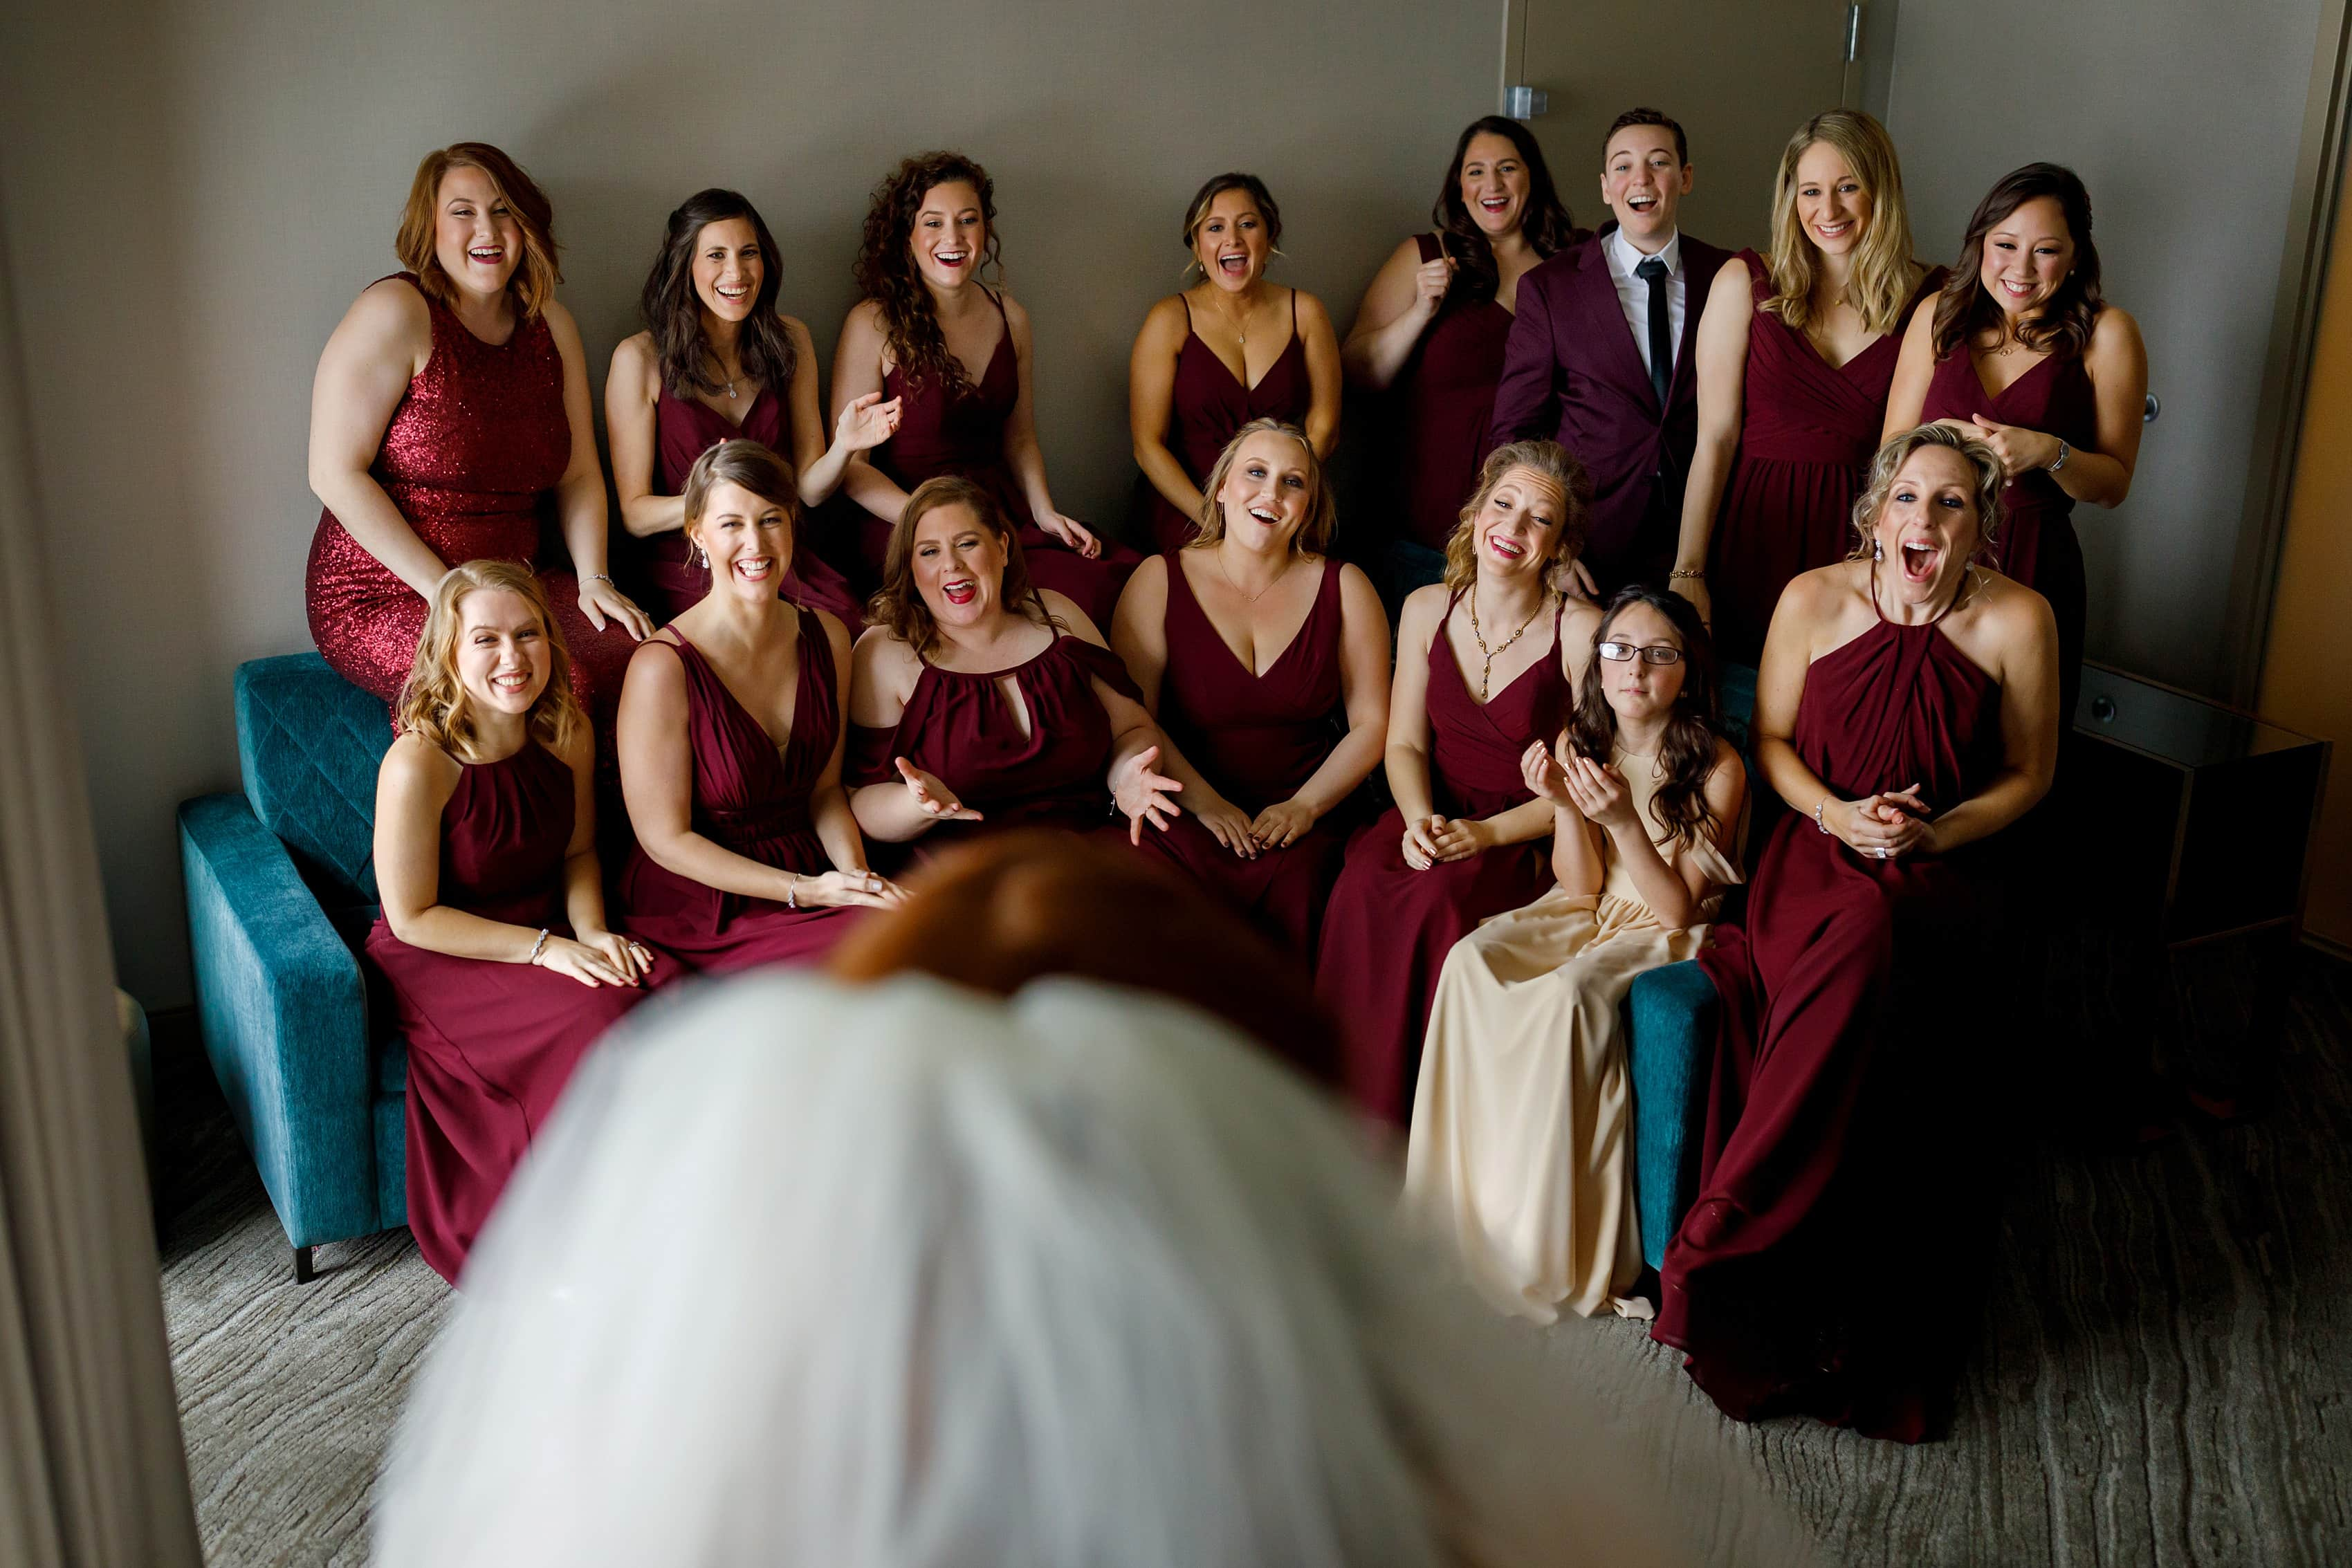 huge group of bridesmaids react to seeing bride in her wedding dress